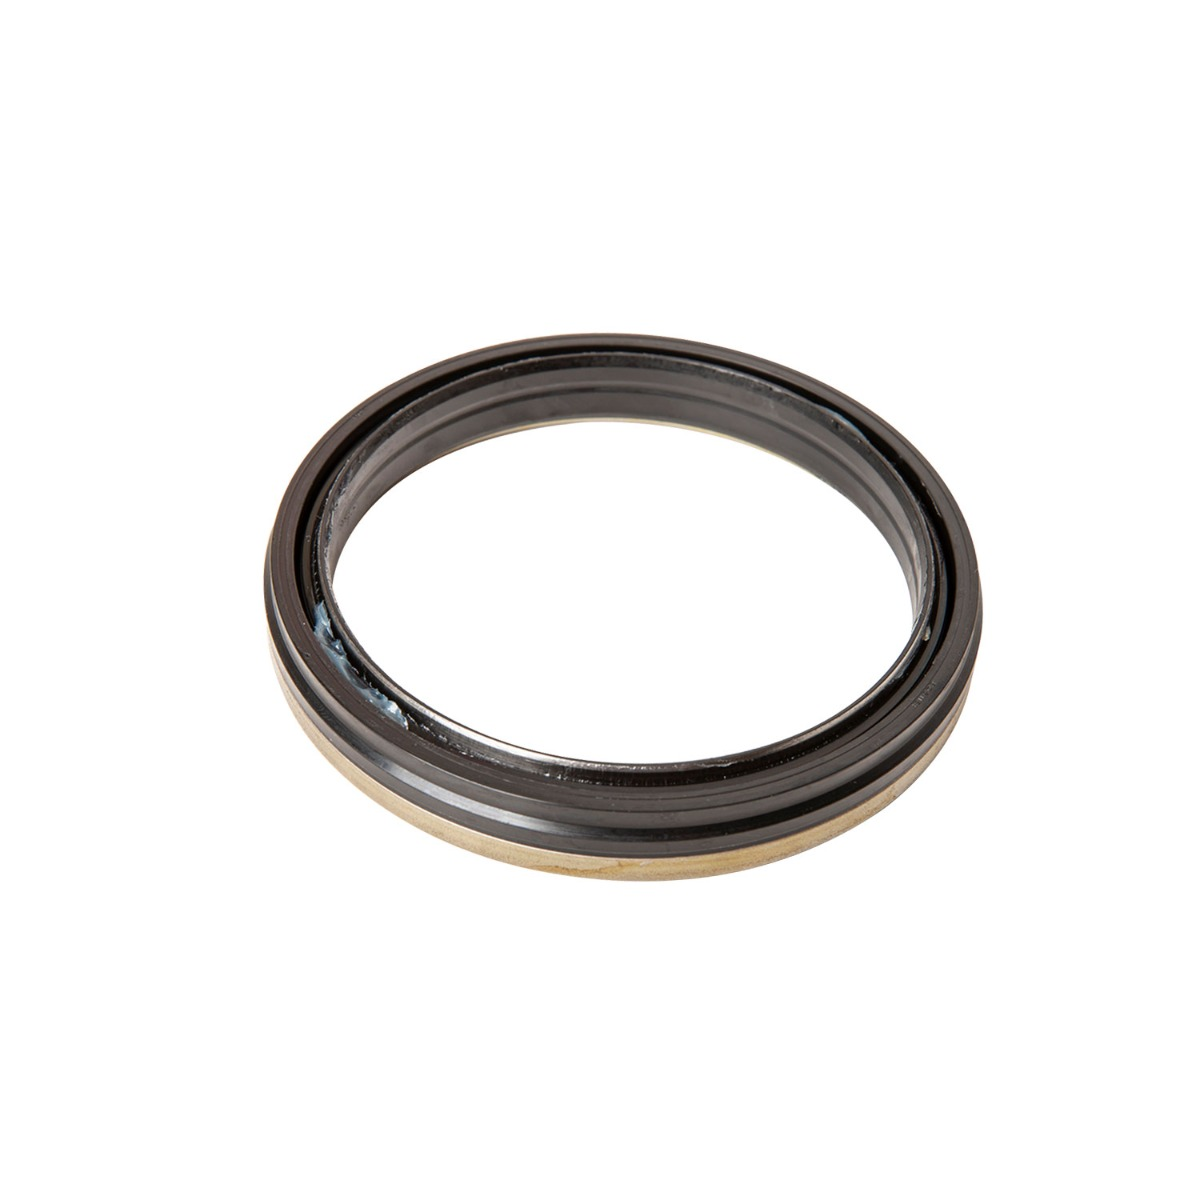 Tractor Seal 3021-0018 Compatible with Kubota Tractor L2900DT L2900DTGST L3010DT L3010GST L3010HST L3130DT L3130GST L3130HST L3240DT